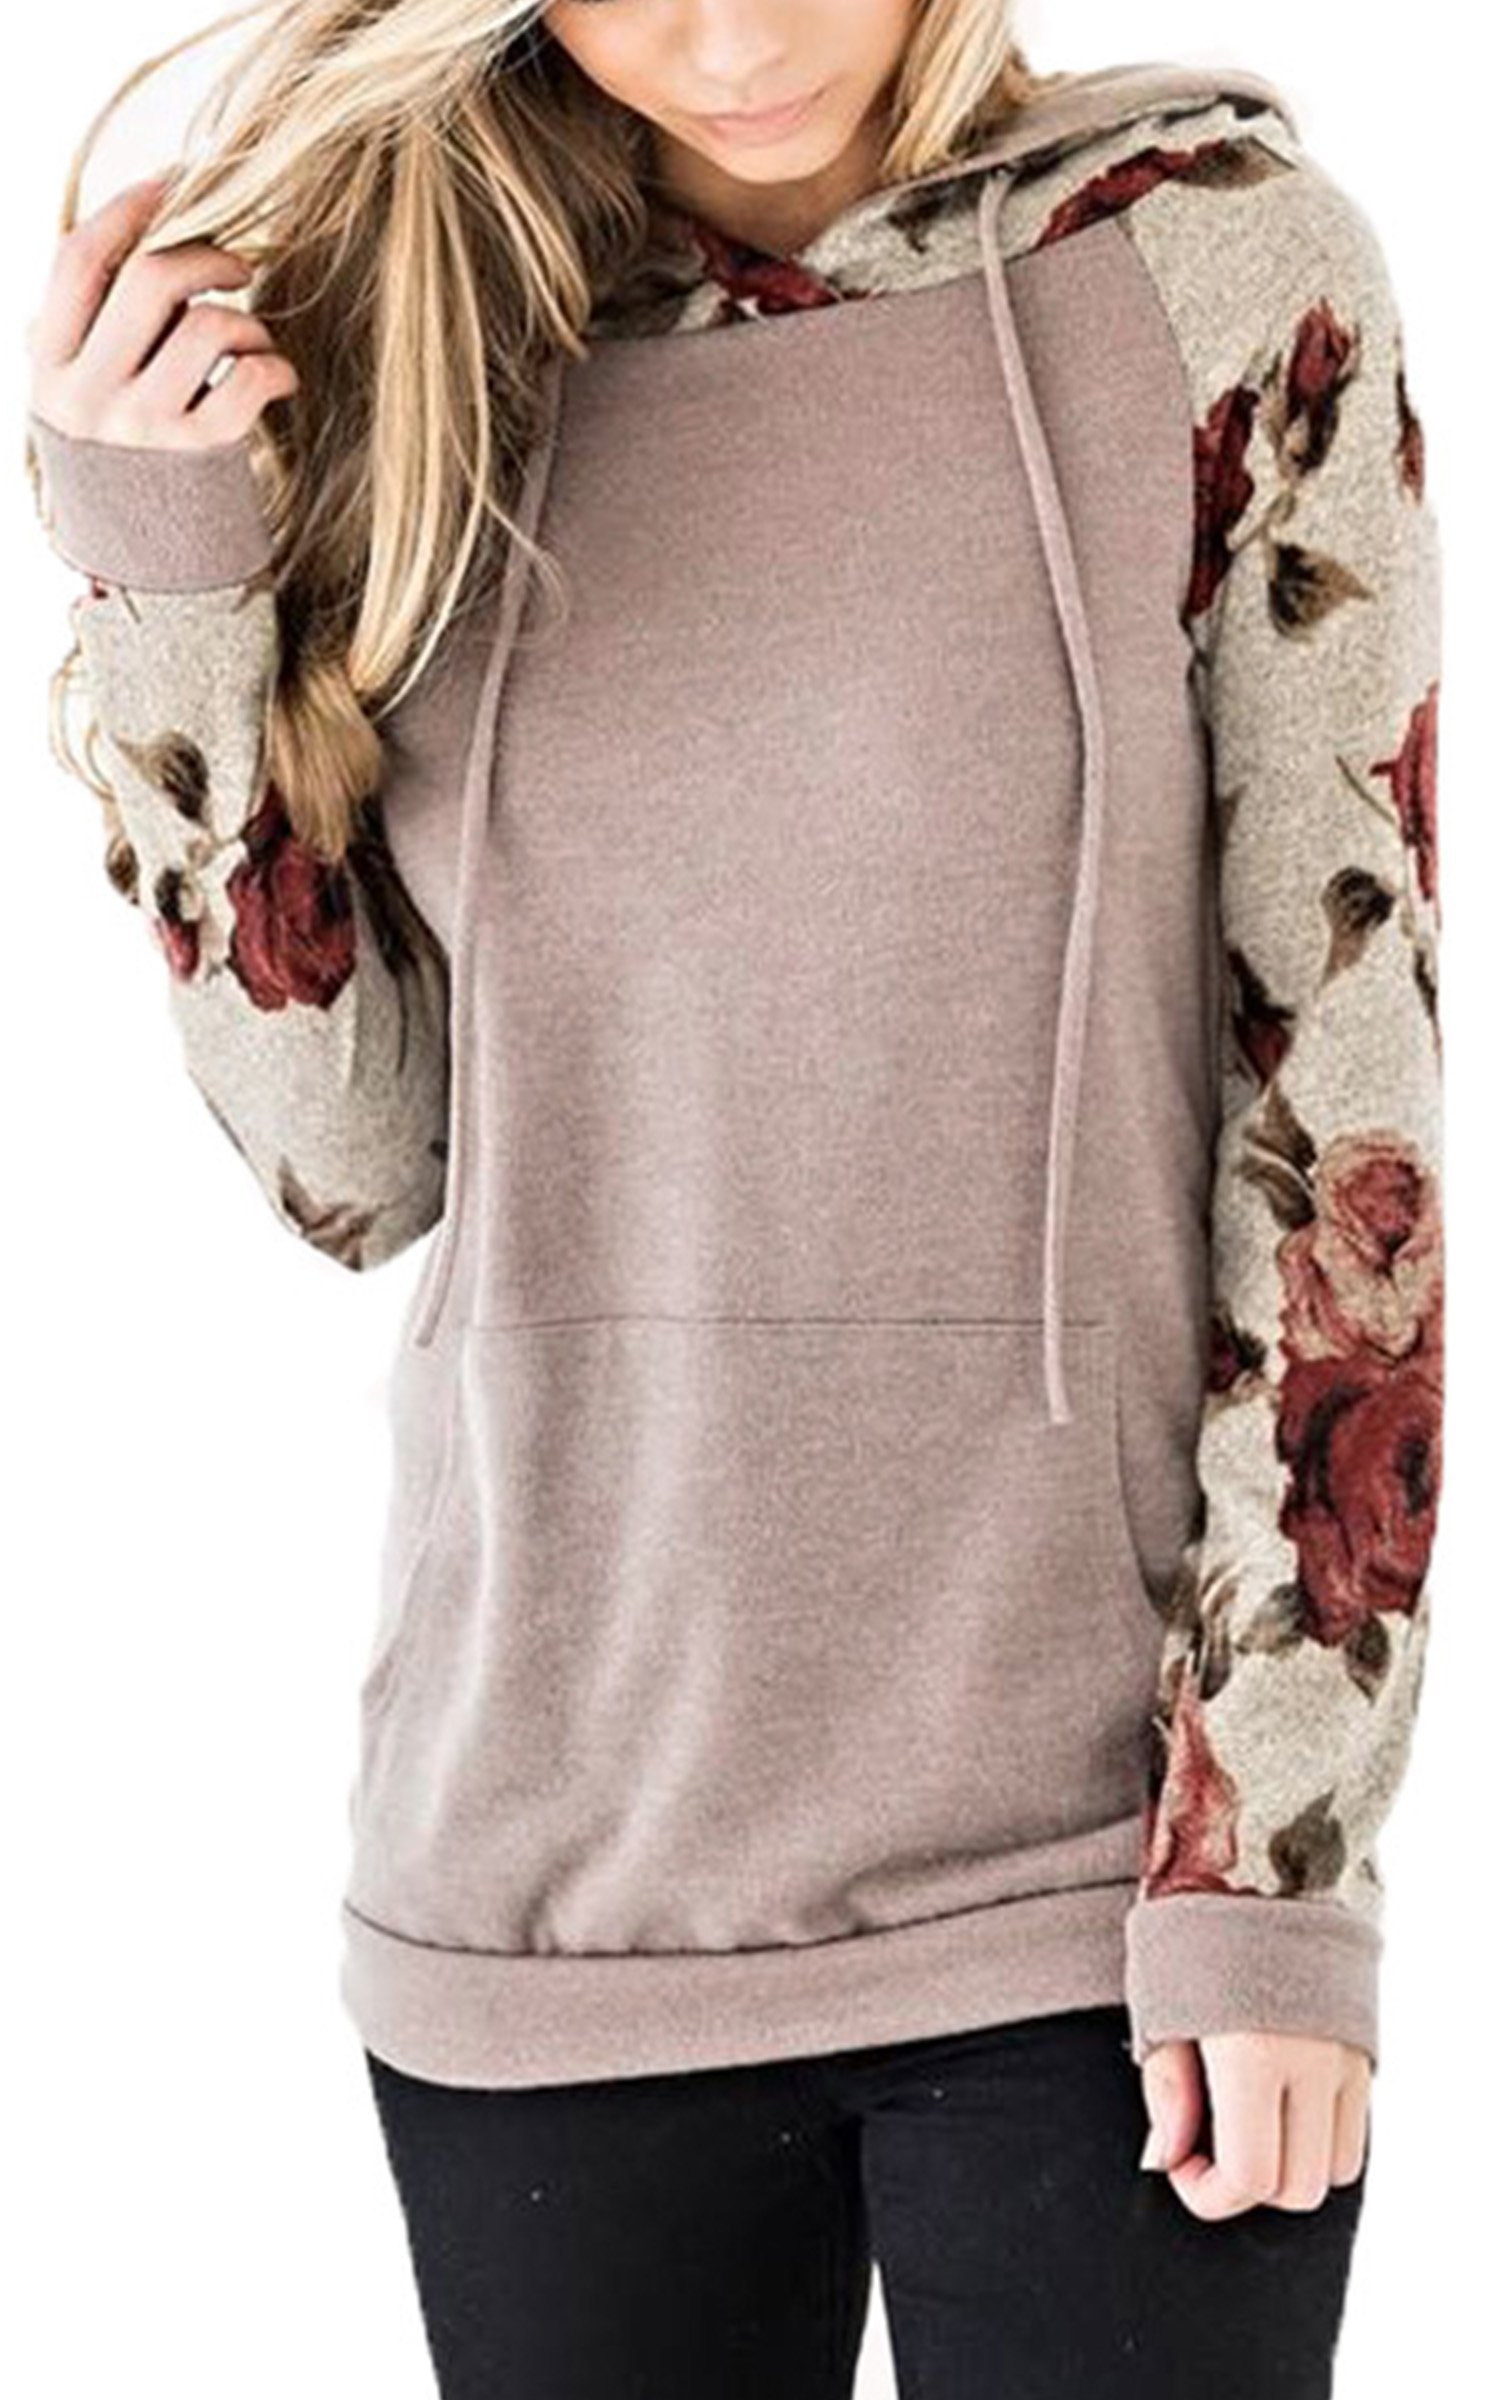 Angashion Women's Floral Printed Long Sleeve Pullover Hoodies Sweatshirt with Pocket Light Caffeine L by Angashion (Image #1)